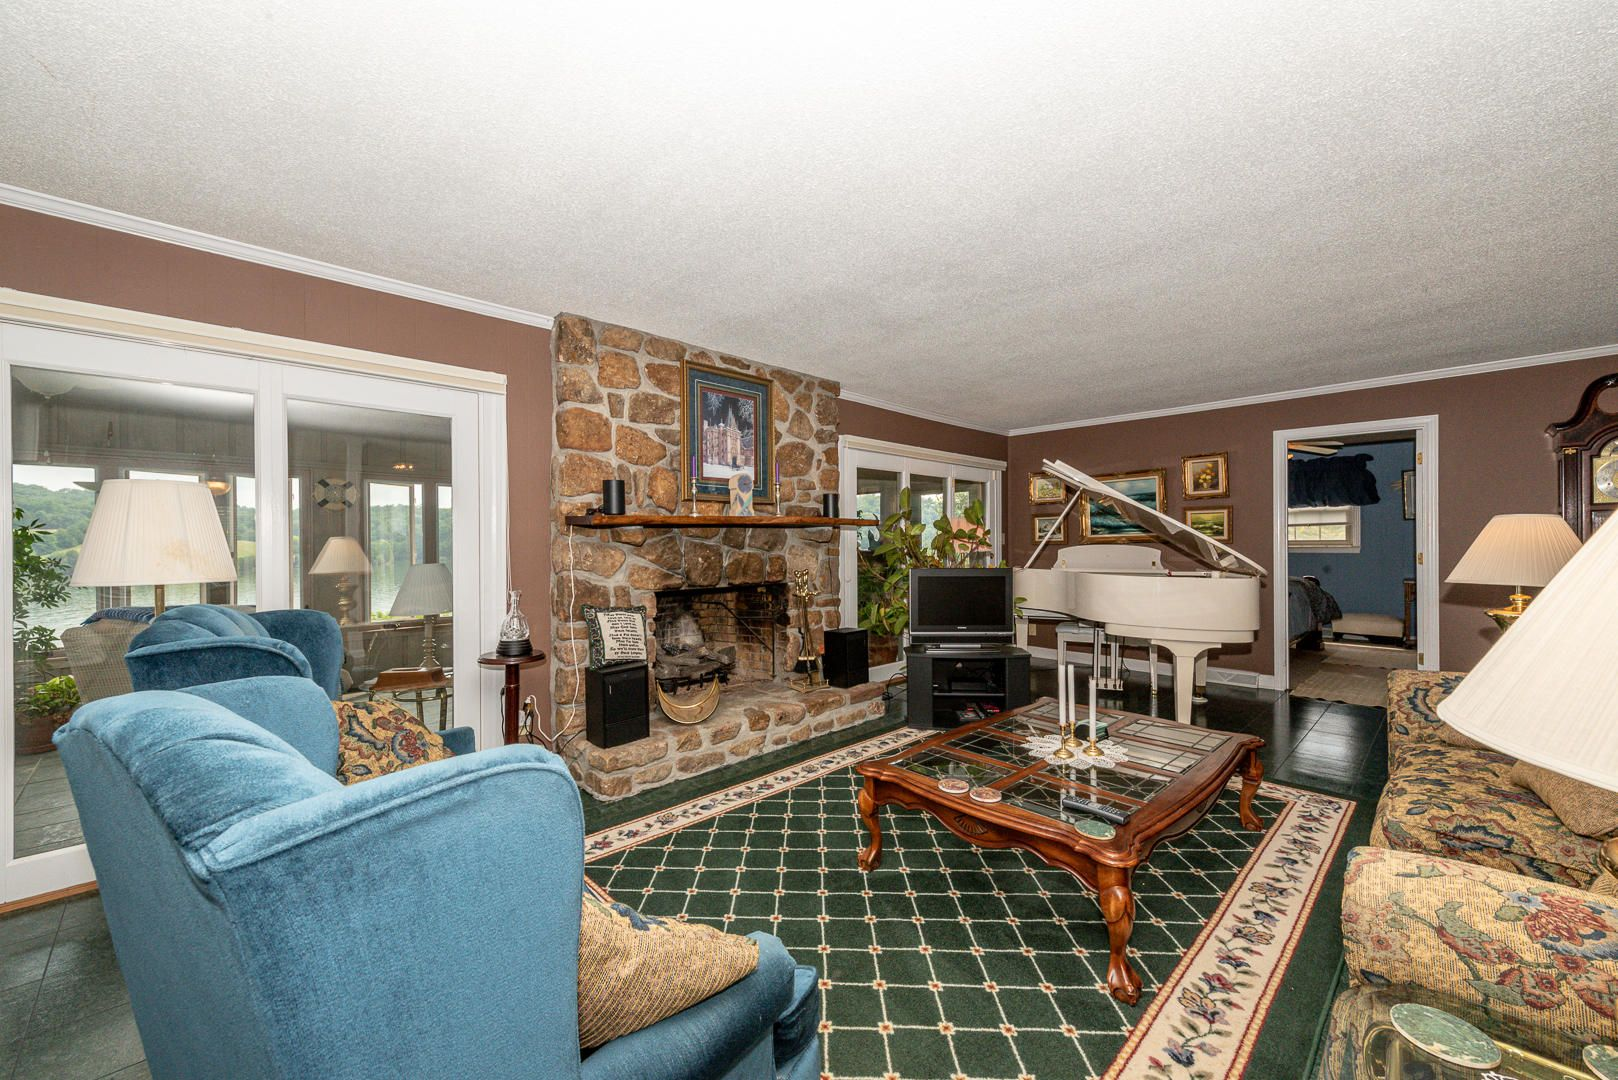 Fireplace in open living area